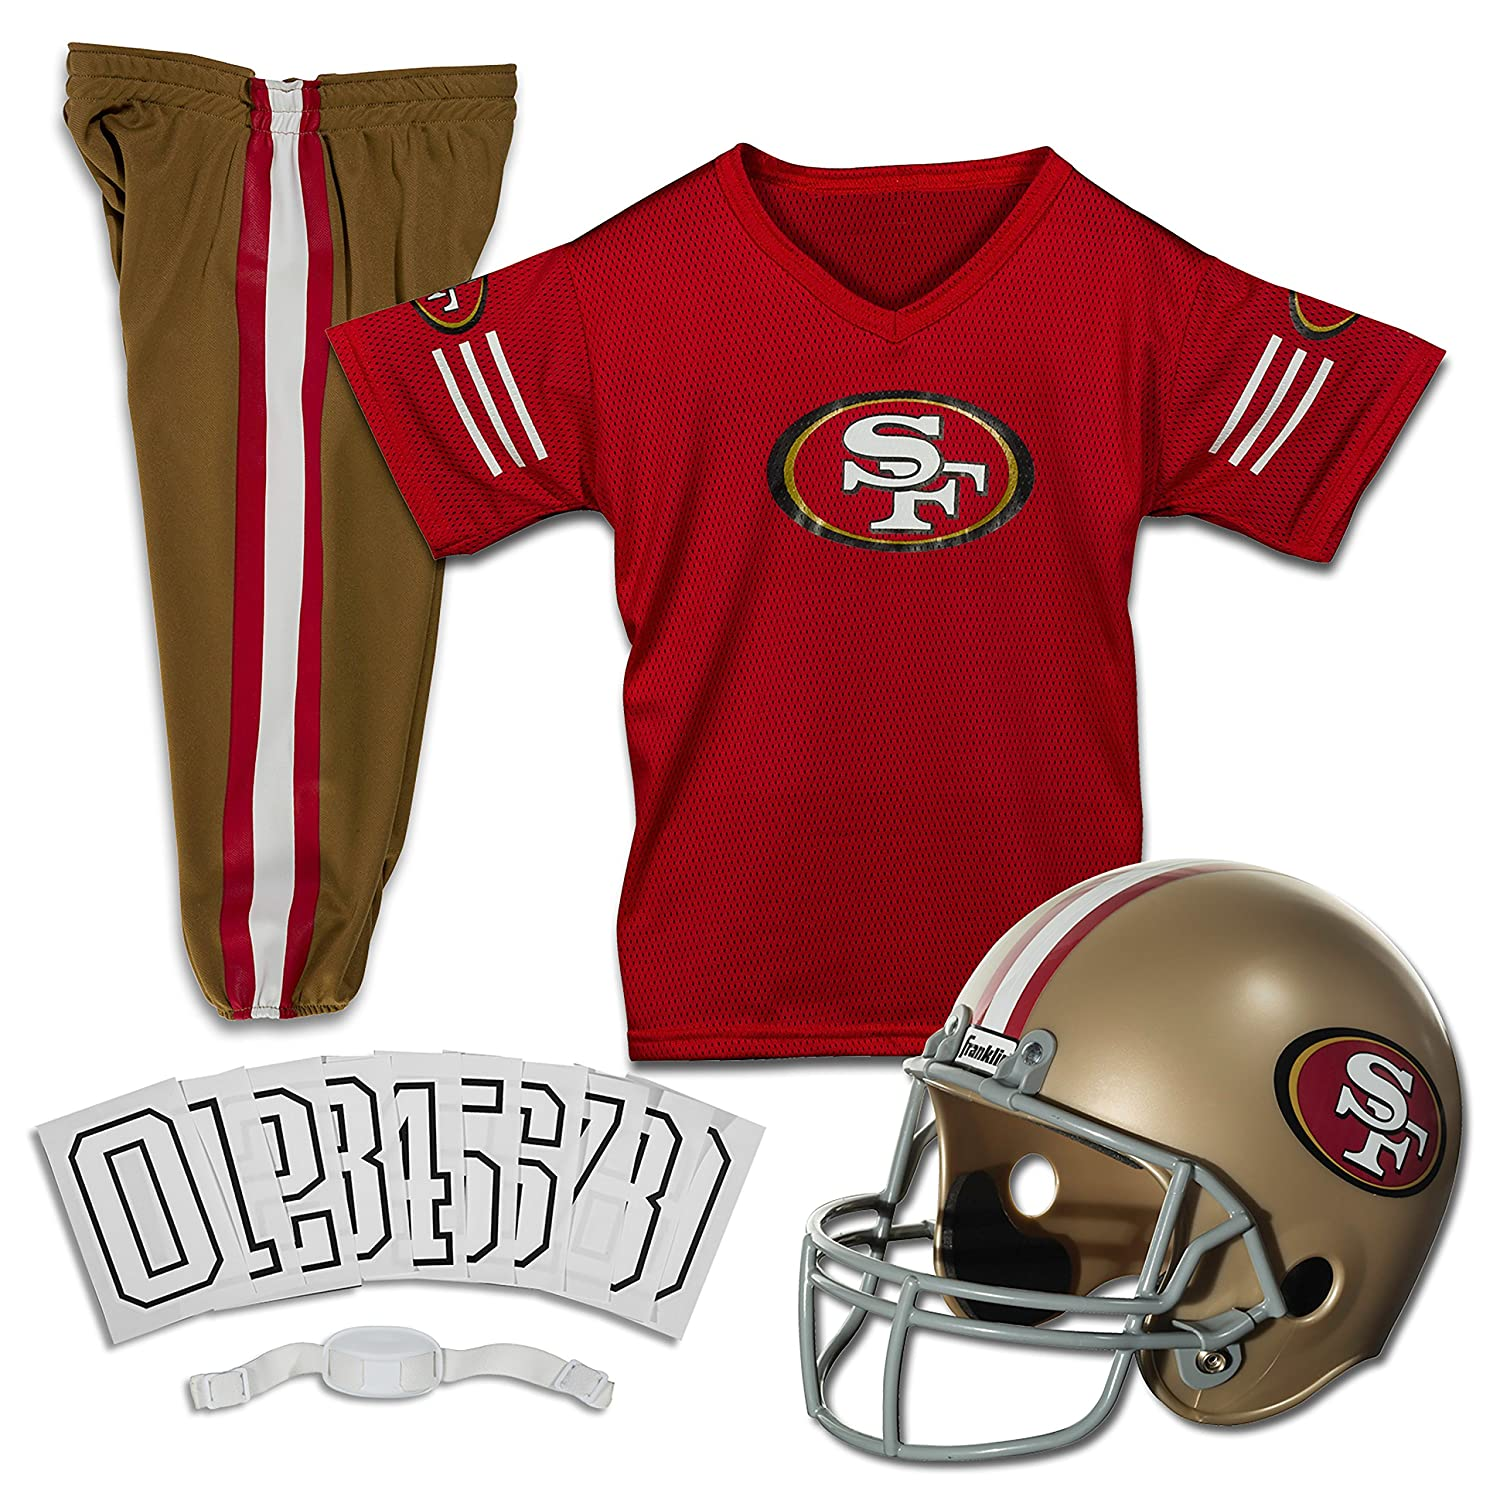 NFL Unisex-Adult Youth Uniform Franklin Sports Inc. 15700F35-P